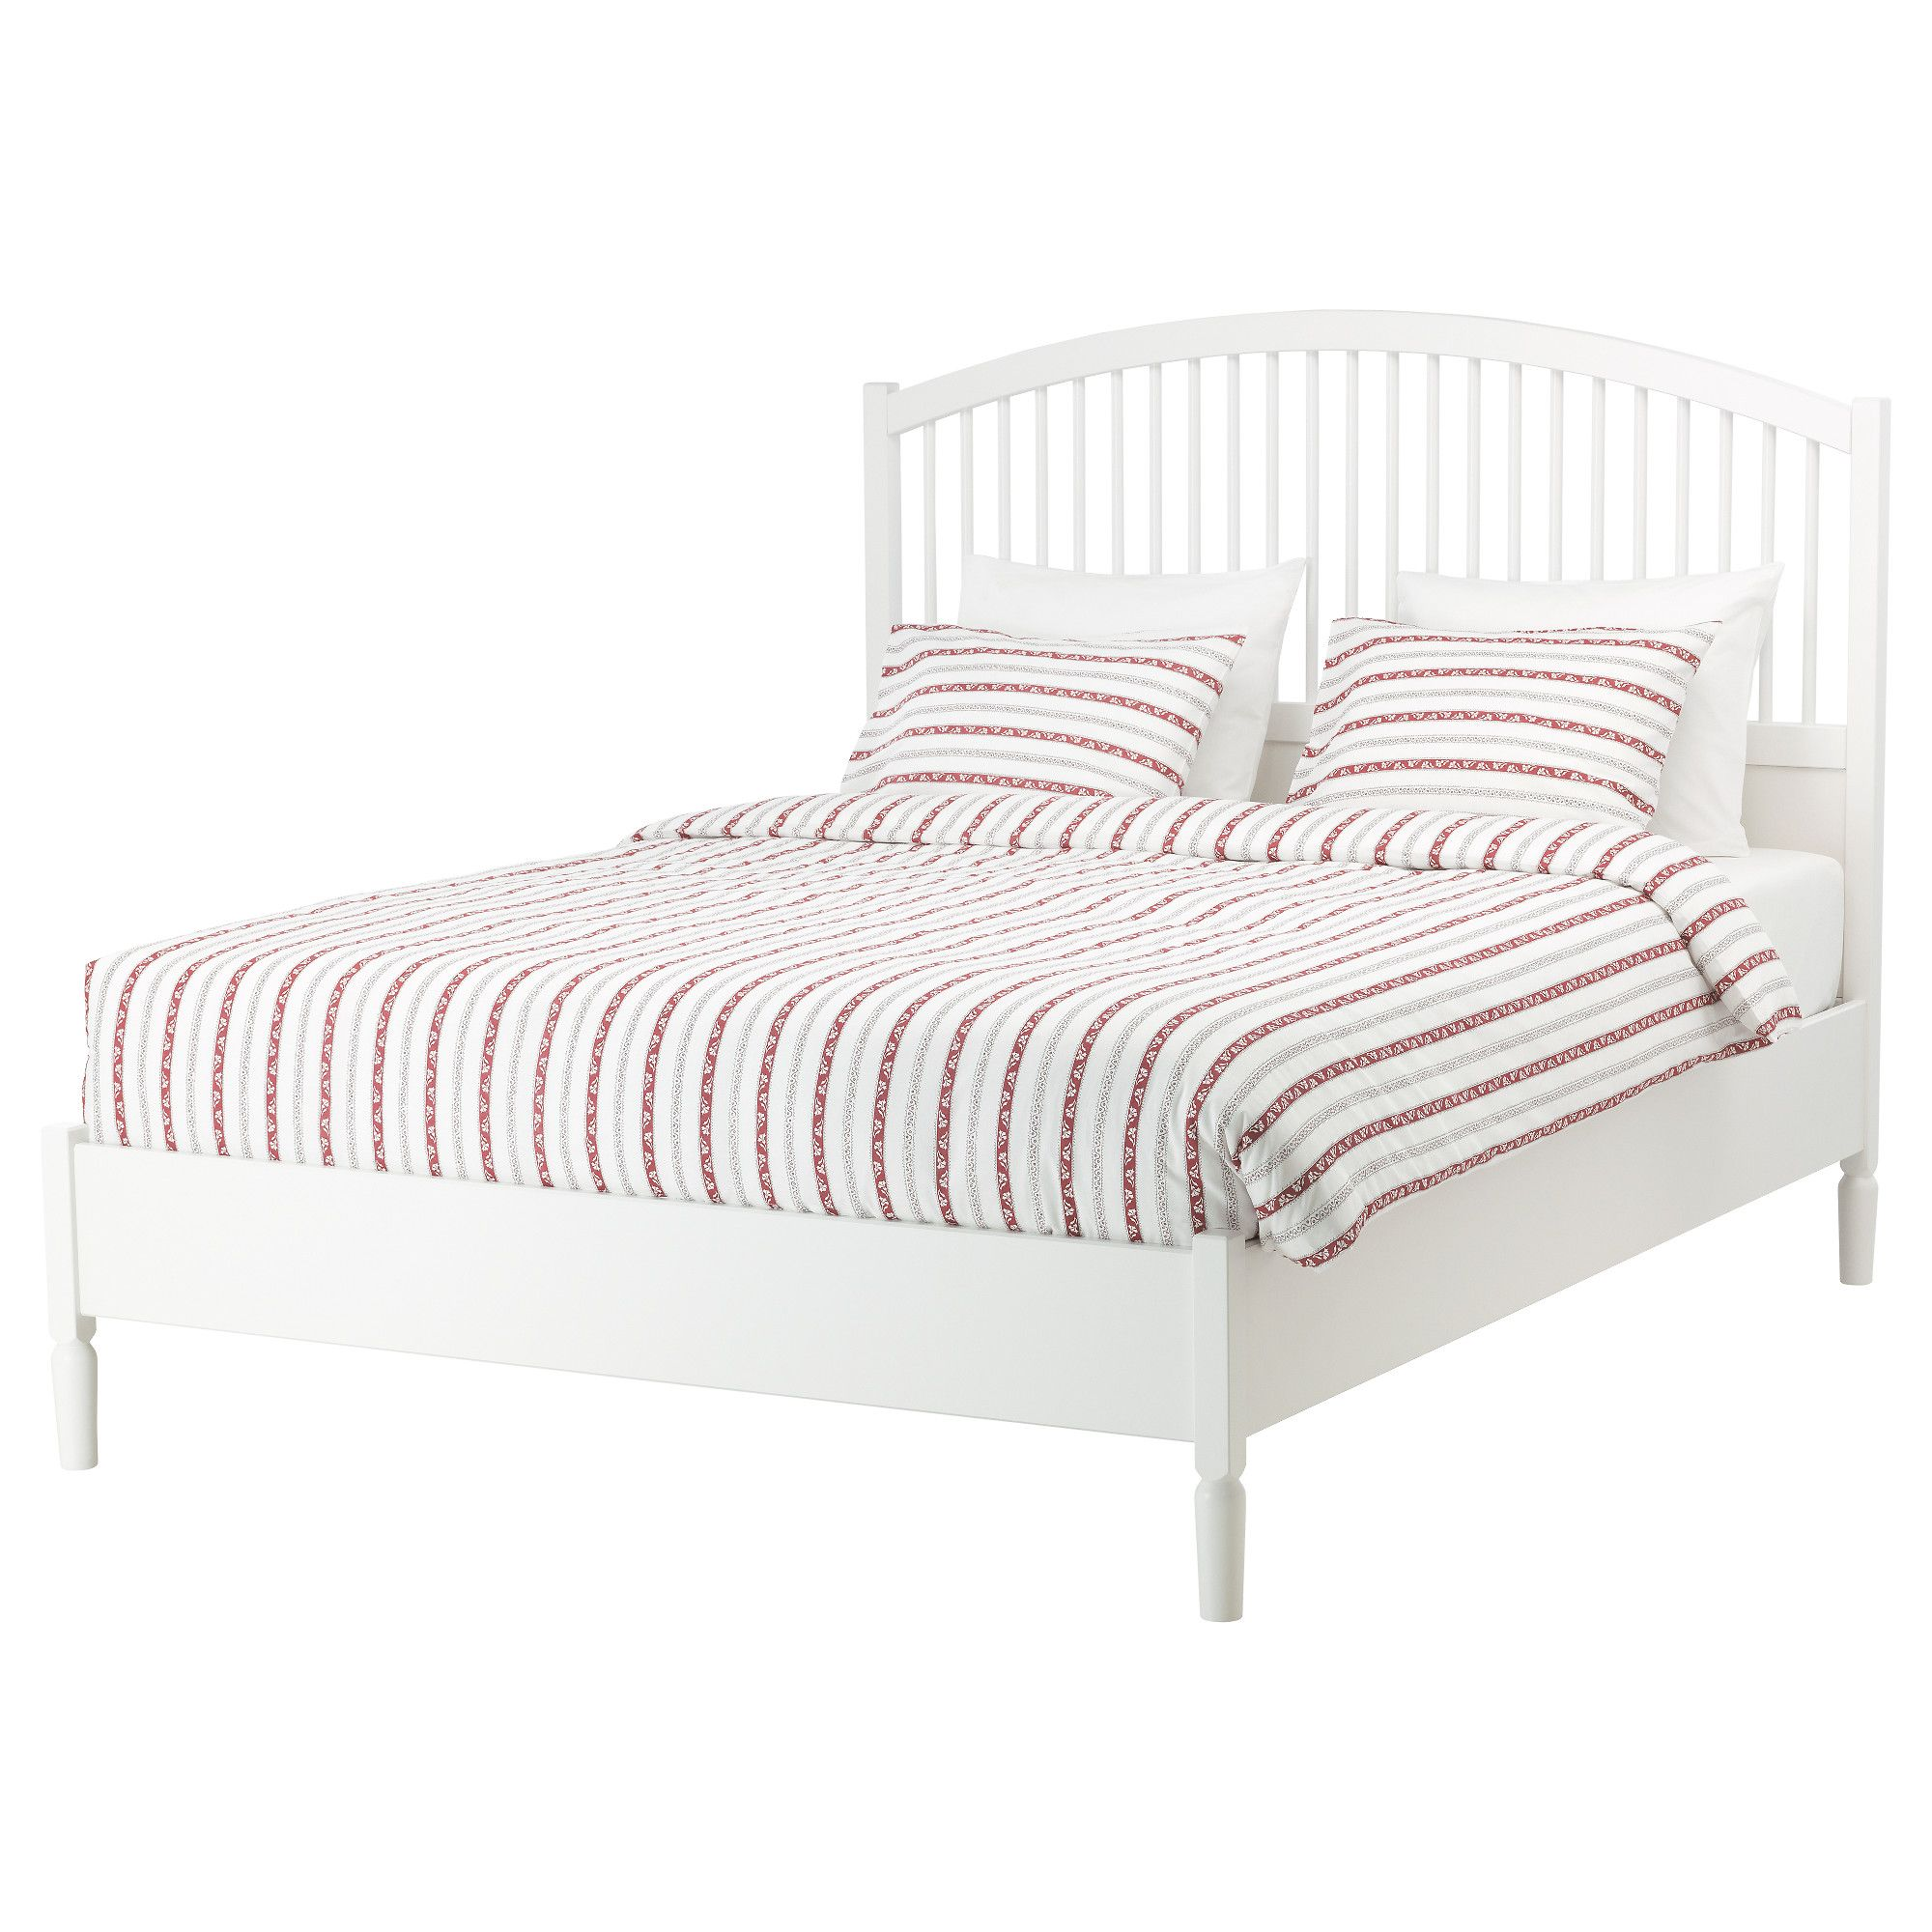 Tyssedal Bed Frame White Queen Ikea Ikea Bed Bed Frame Ikea Bed Frames